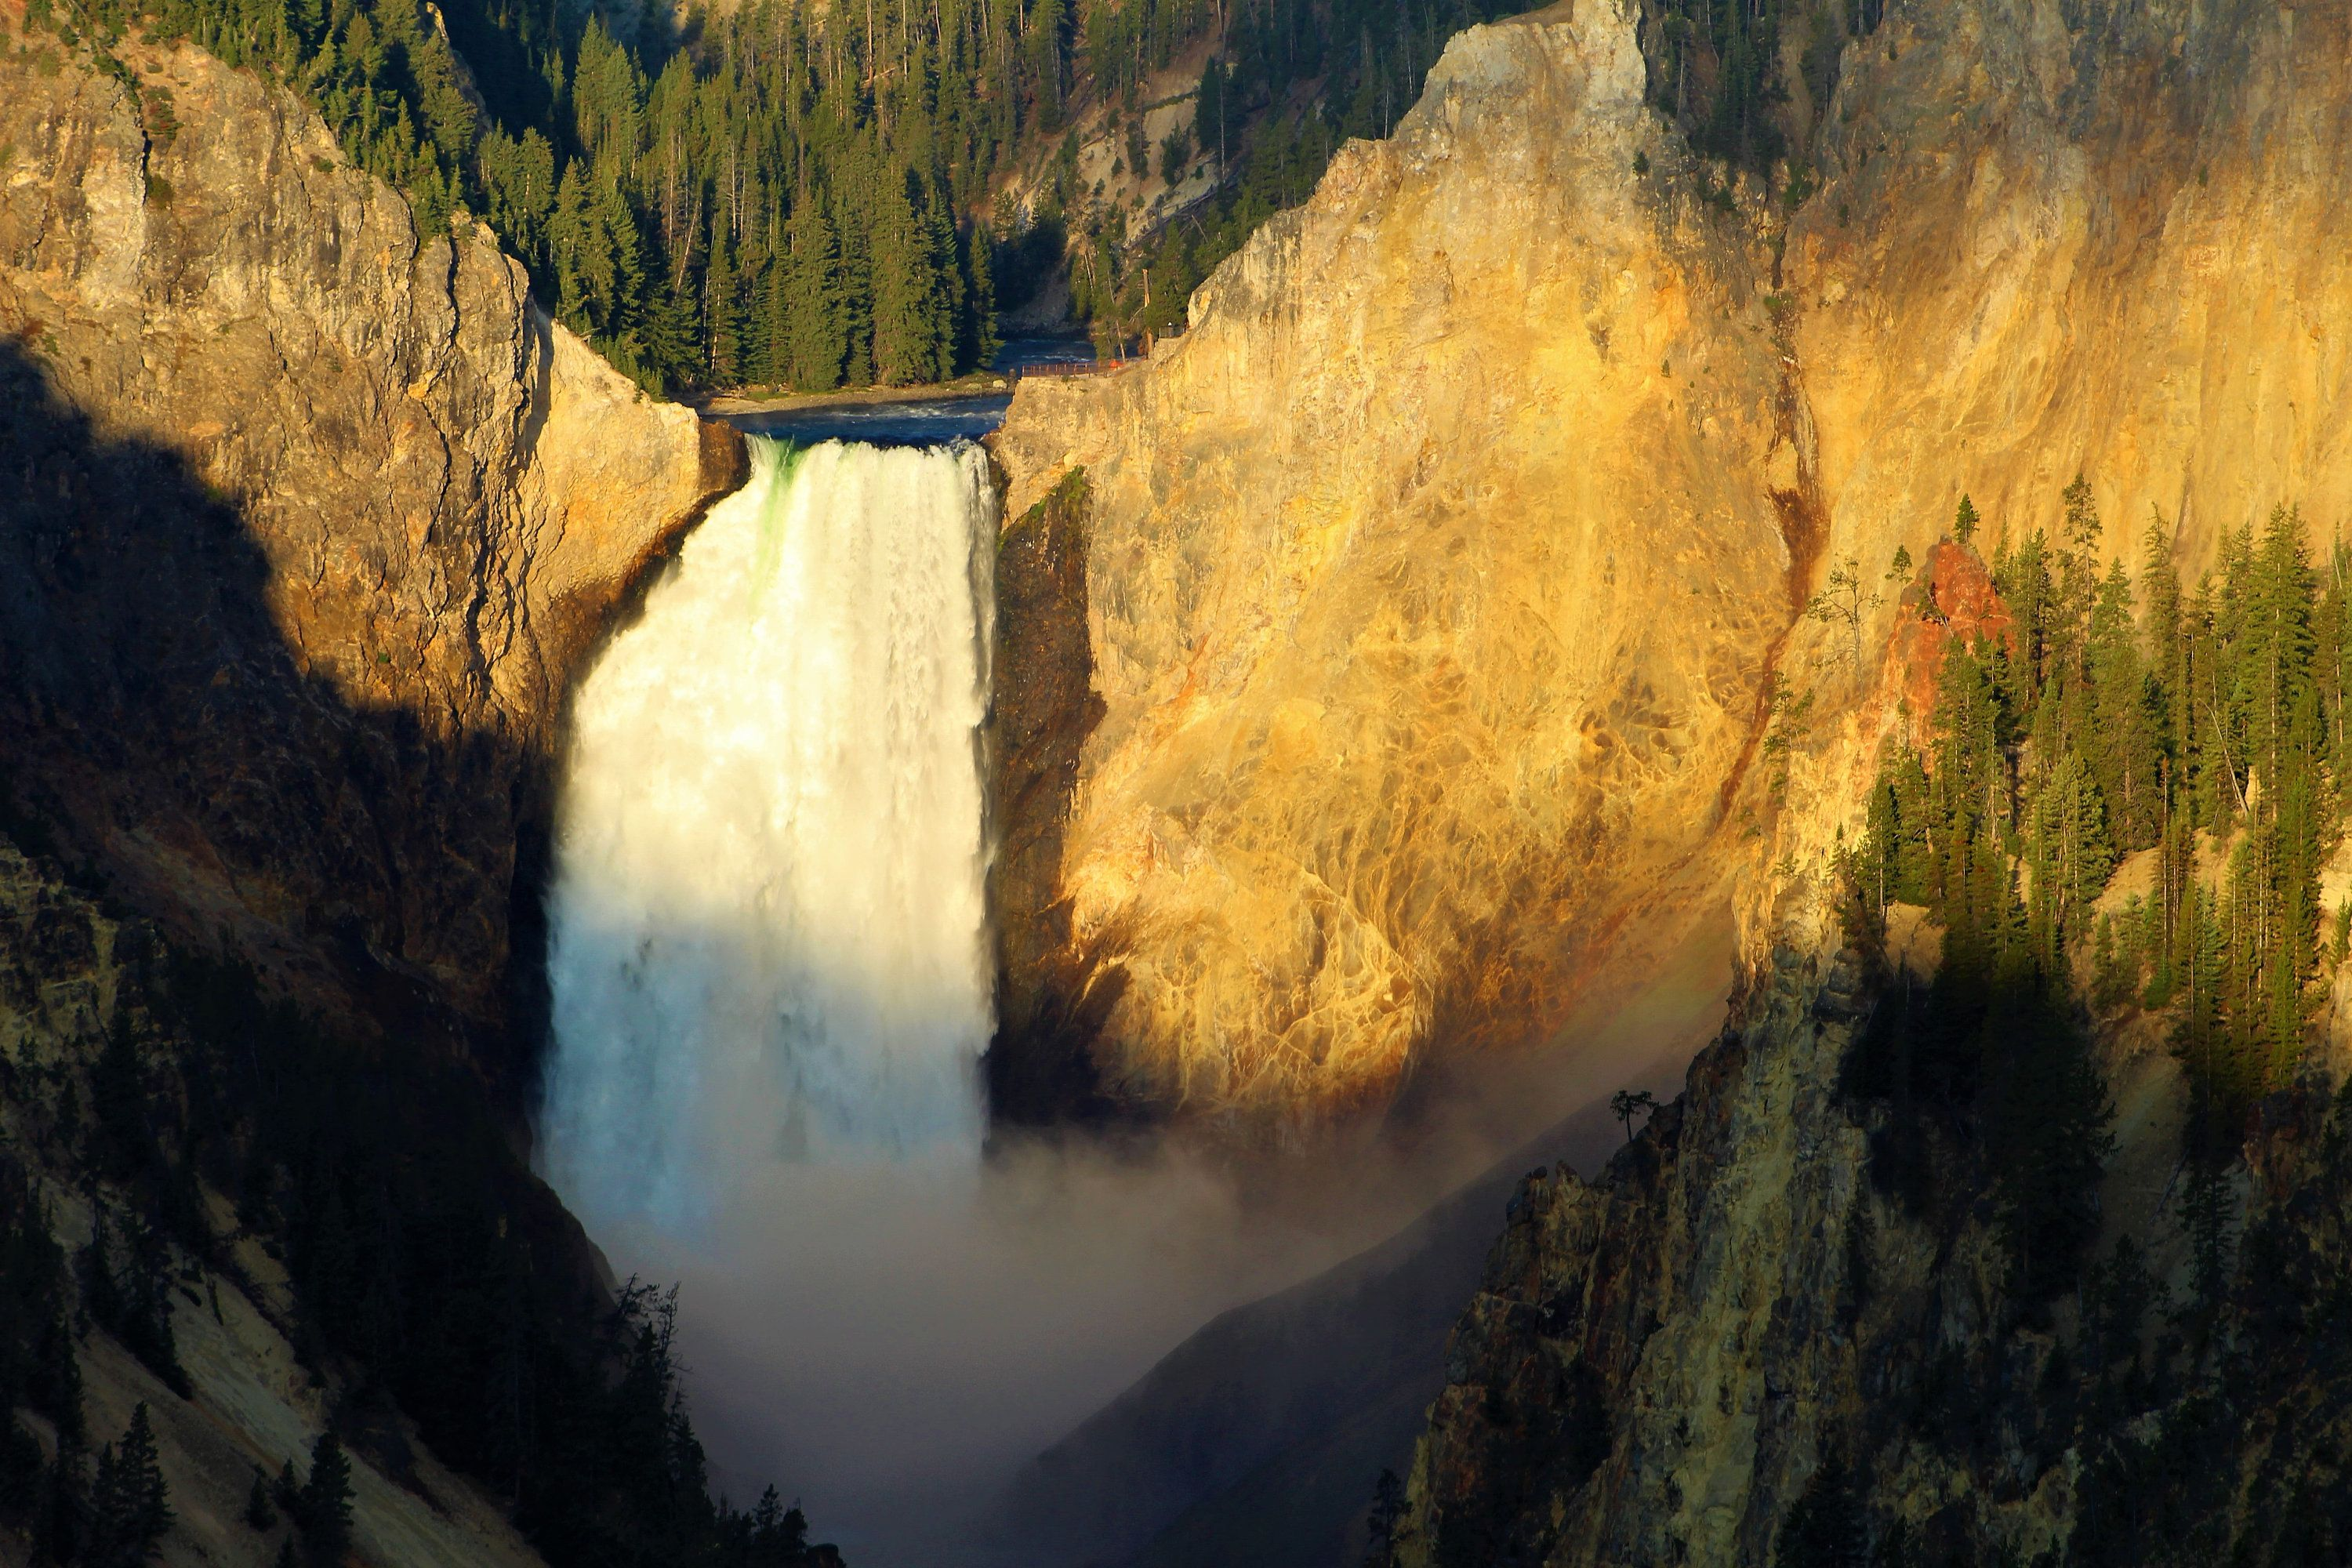 Sunrise at Lower Falls in Yellowstone National Park